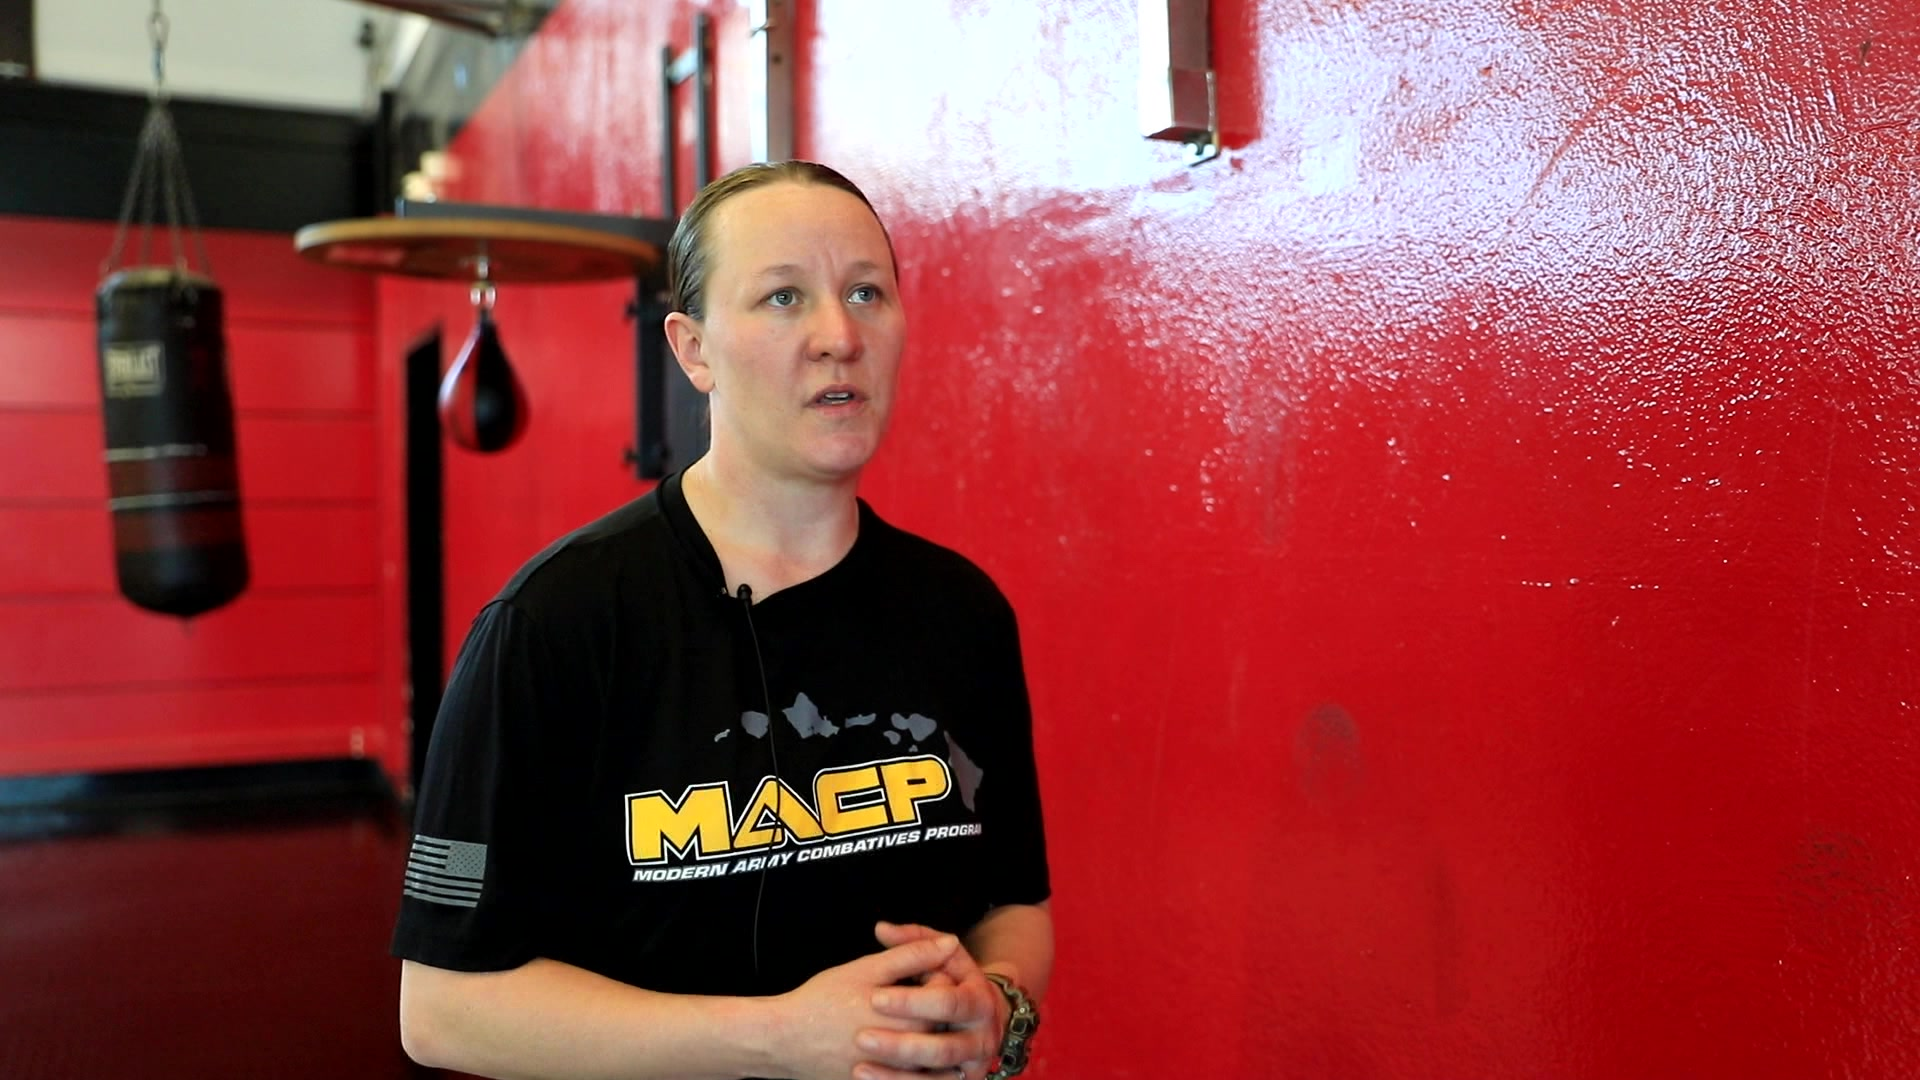 """U.S. Army Sgt. Sarah Schneider Chance once graced the octagon in the world of Mixed Martial Arts. She now finds purpose in uniform, serving her country in a mission """"bigger than herself."""""""